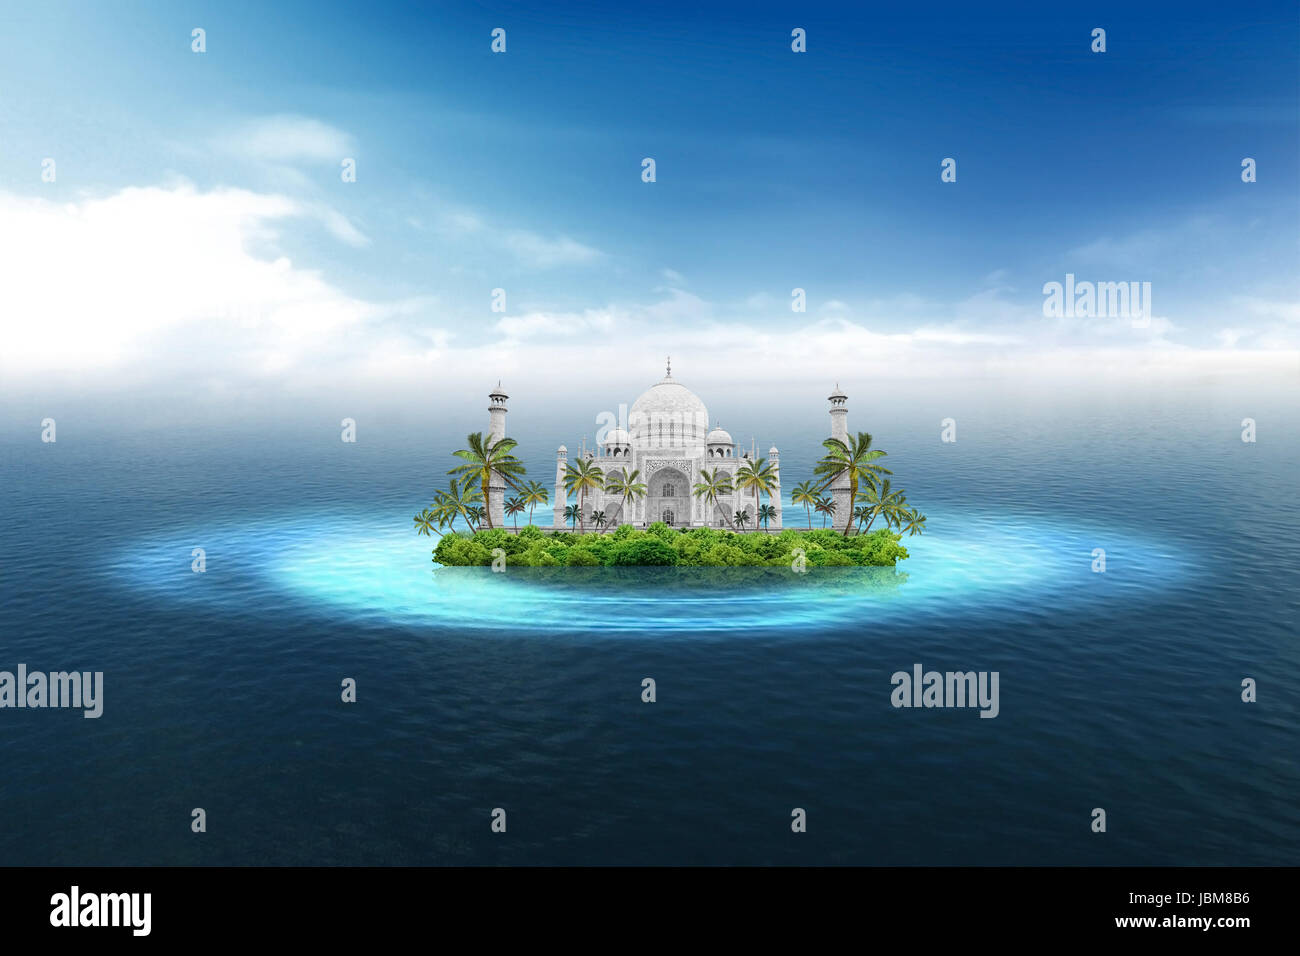 India: Agra landmark, Taji Mahal, on the tropical island in the middle of the ocean - Stock Image